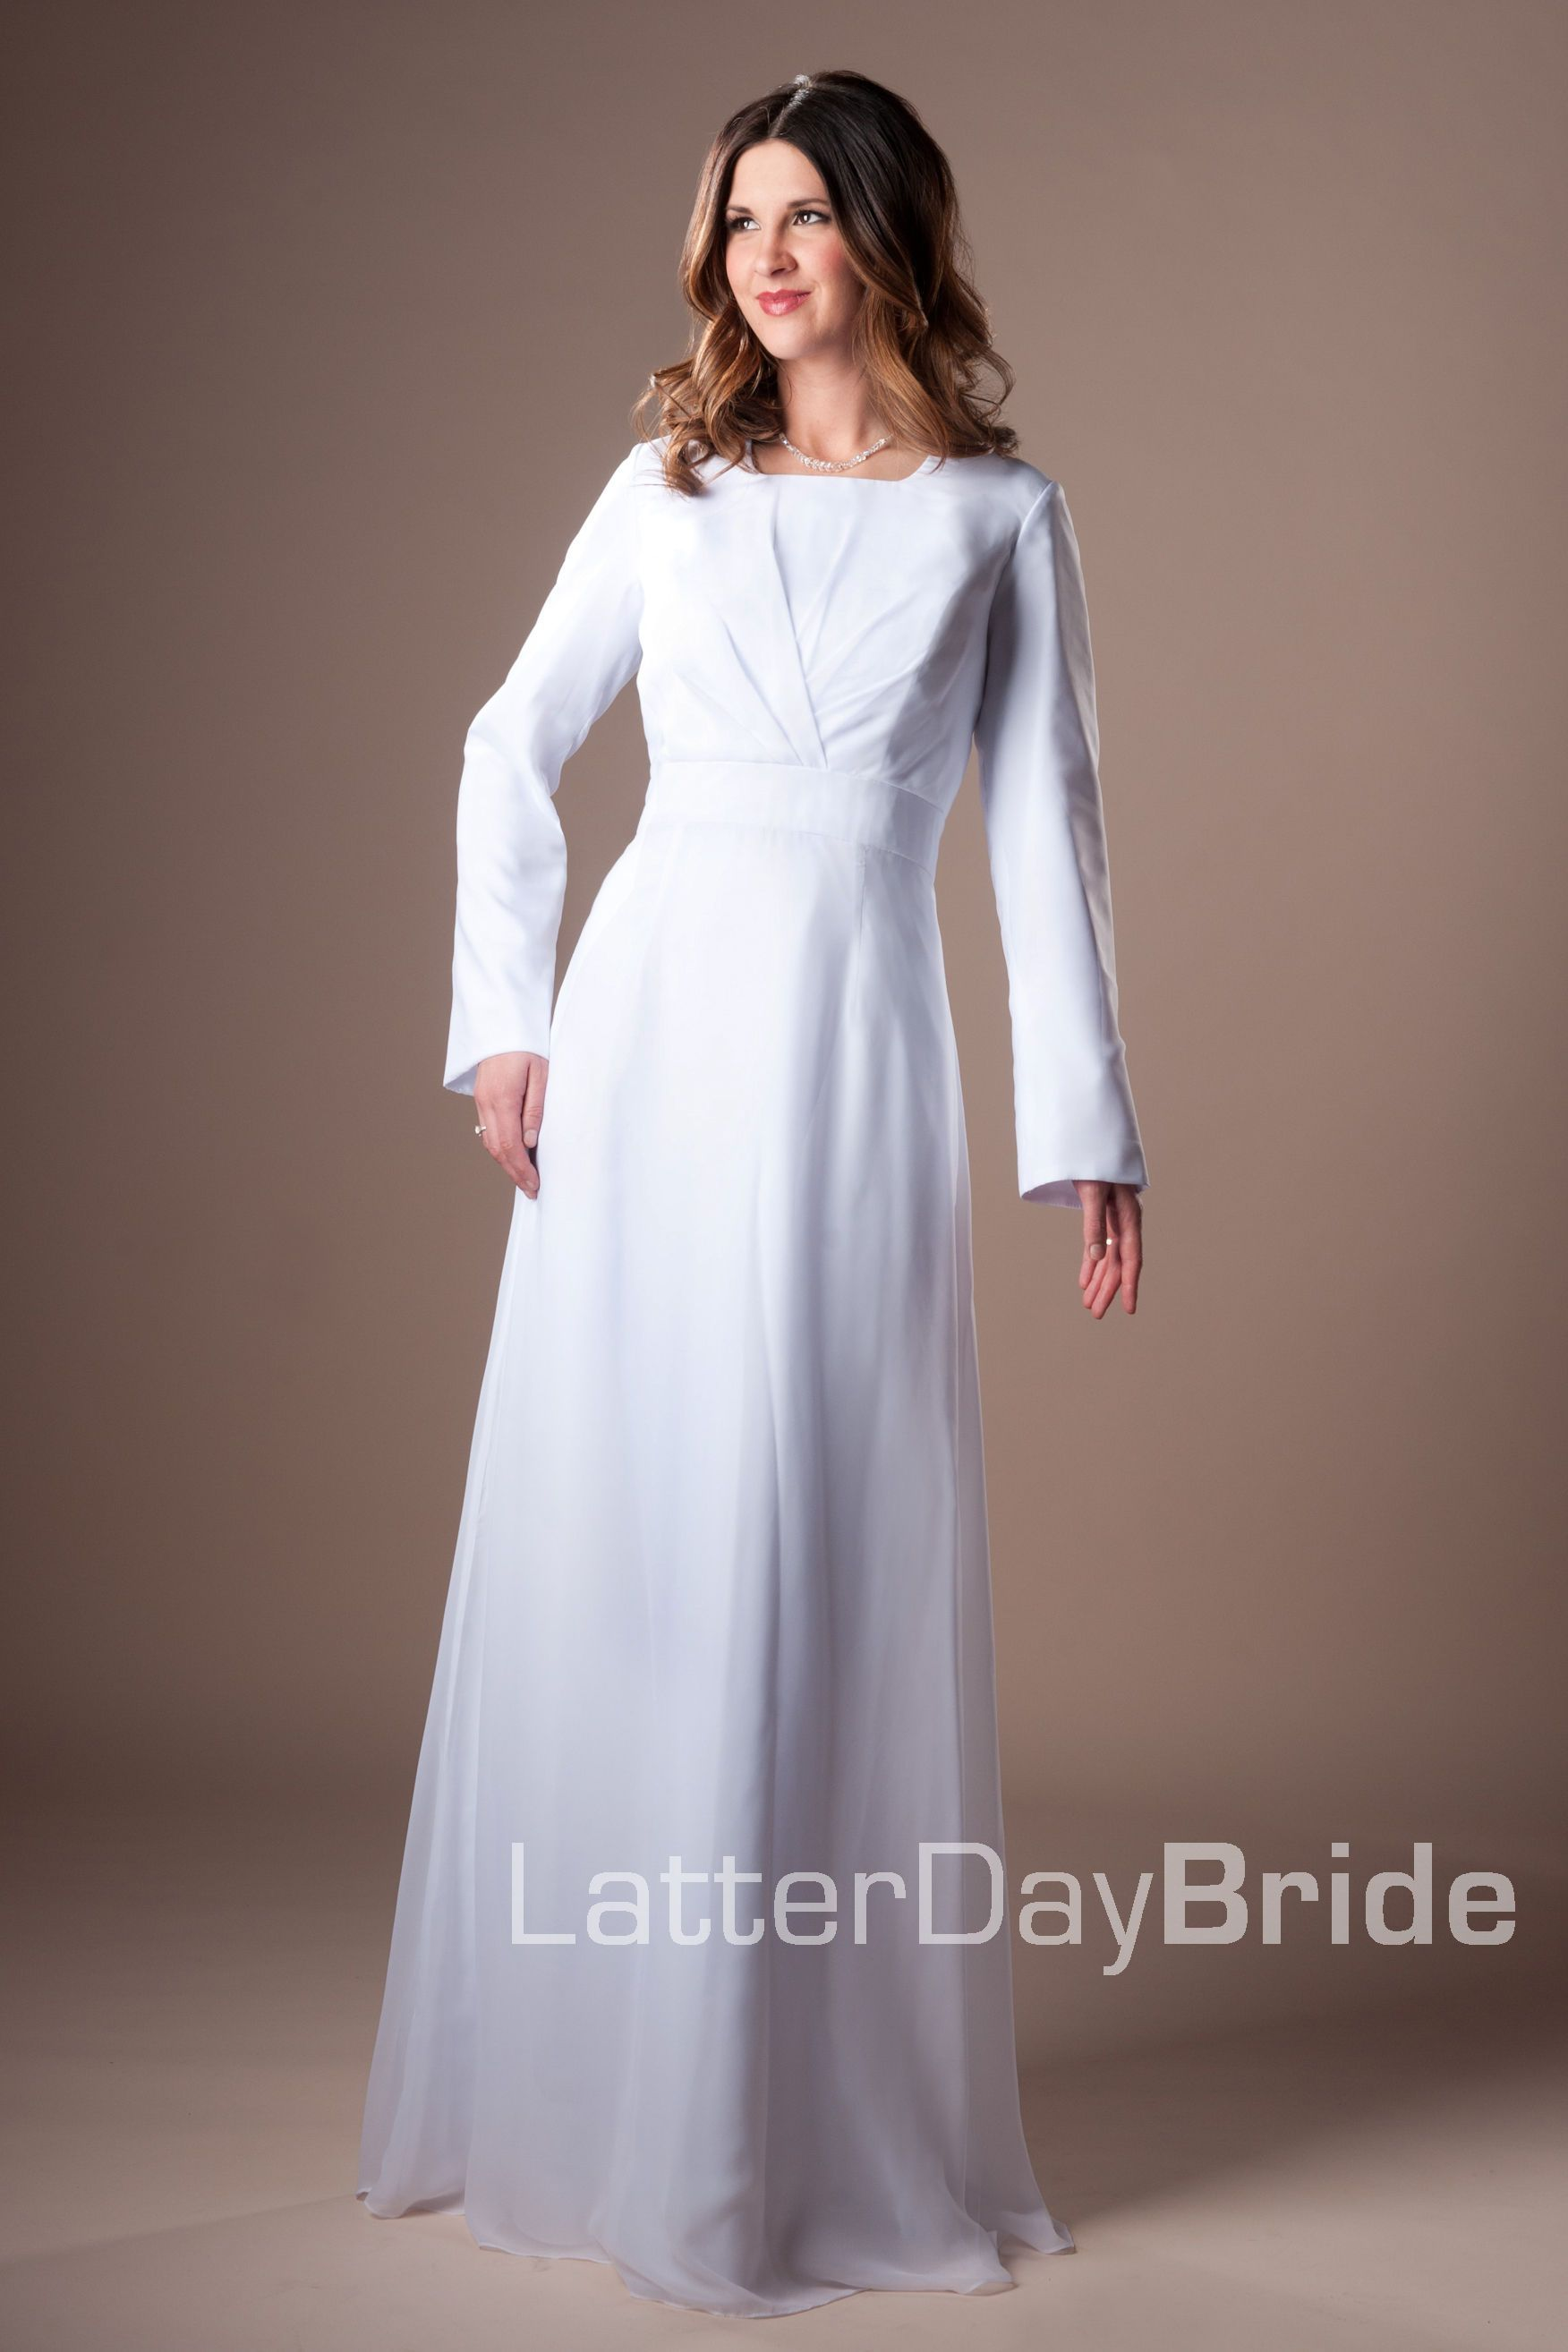 Modest wedding dress star valley latterdaybride prom modest modest wedding dress star valley latterdaybride prom modest mormon lds temple dress ombrellifo Images